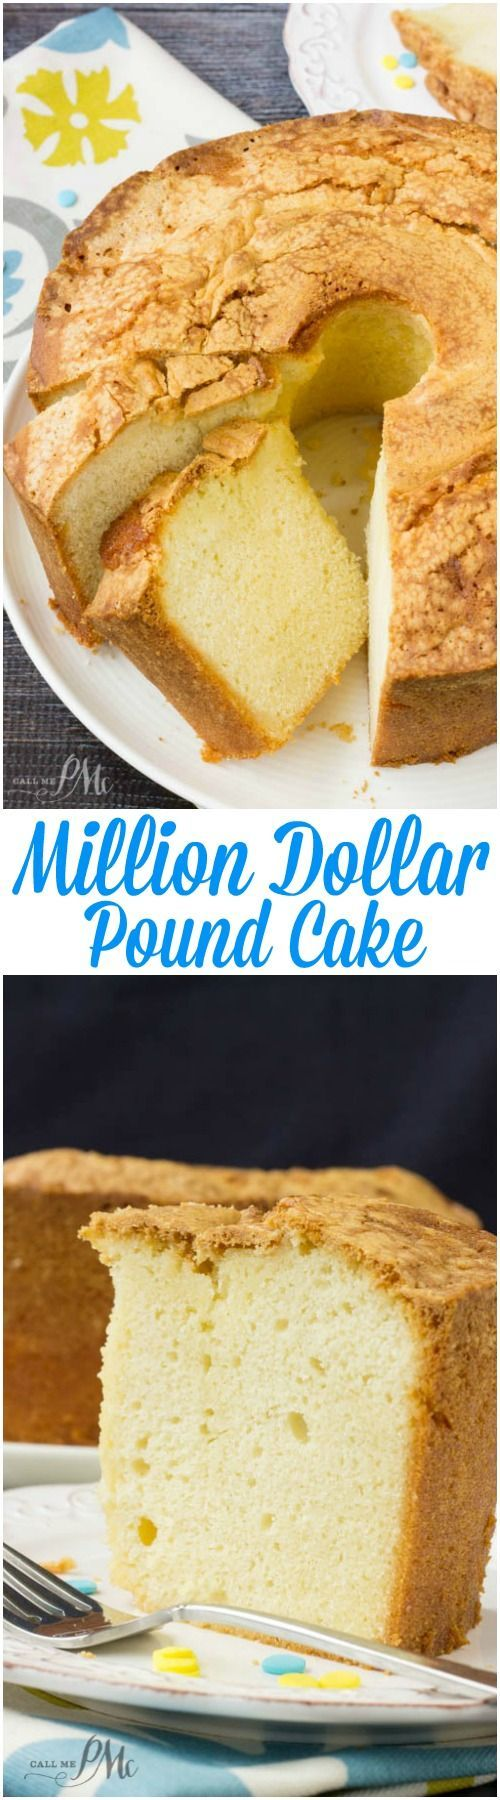 A crowd-pleaser, this Million Dollar Pound Cake has a fine, rich, smooth texture with classic vanilla flavor. It's a classic for a reason and you'll understand the title 'million dollar' after one taste!